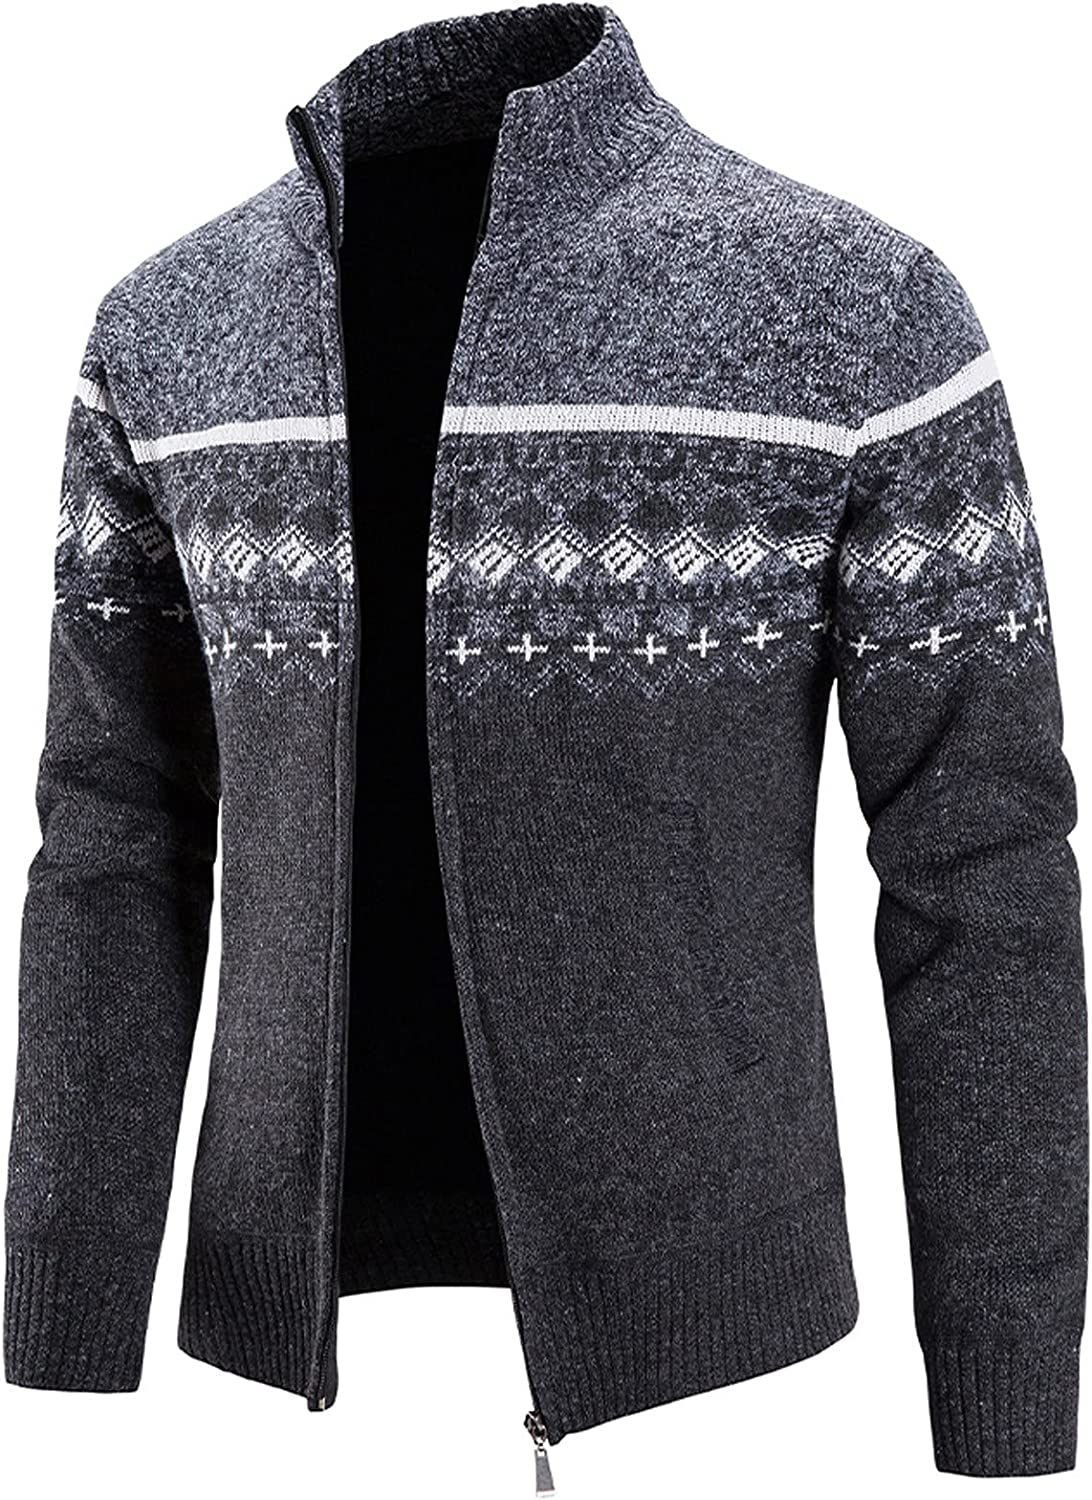 XXBR Sweater Cardigan Jackets for Mens, Fall Winter Zipper Plaid Stand Collar Coat Patchwork Warm Slim Casual Outerwear